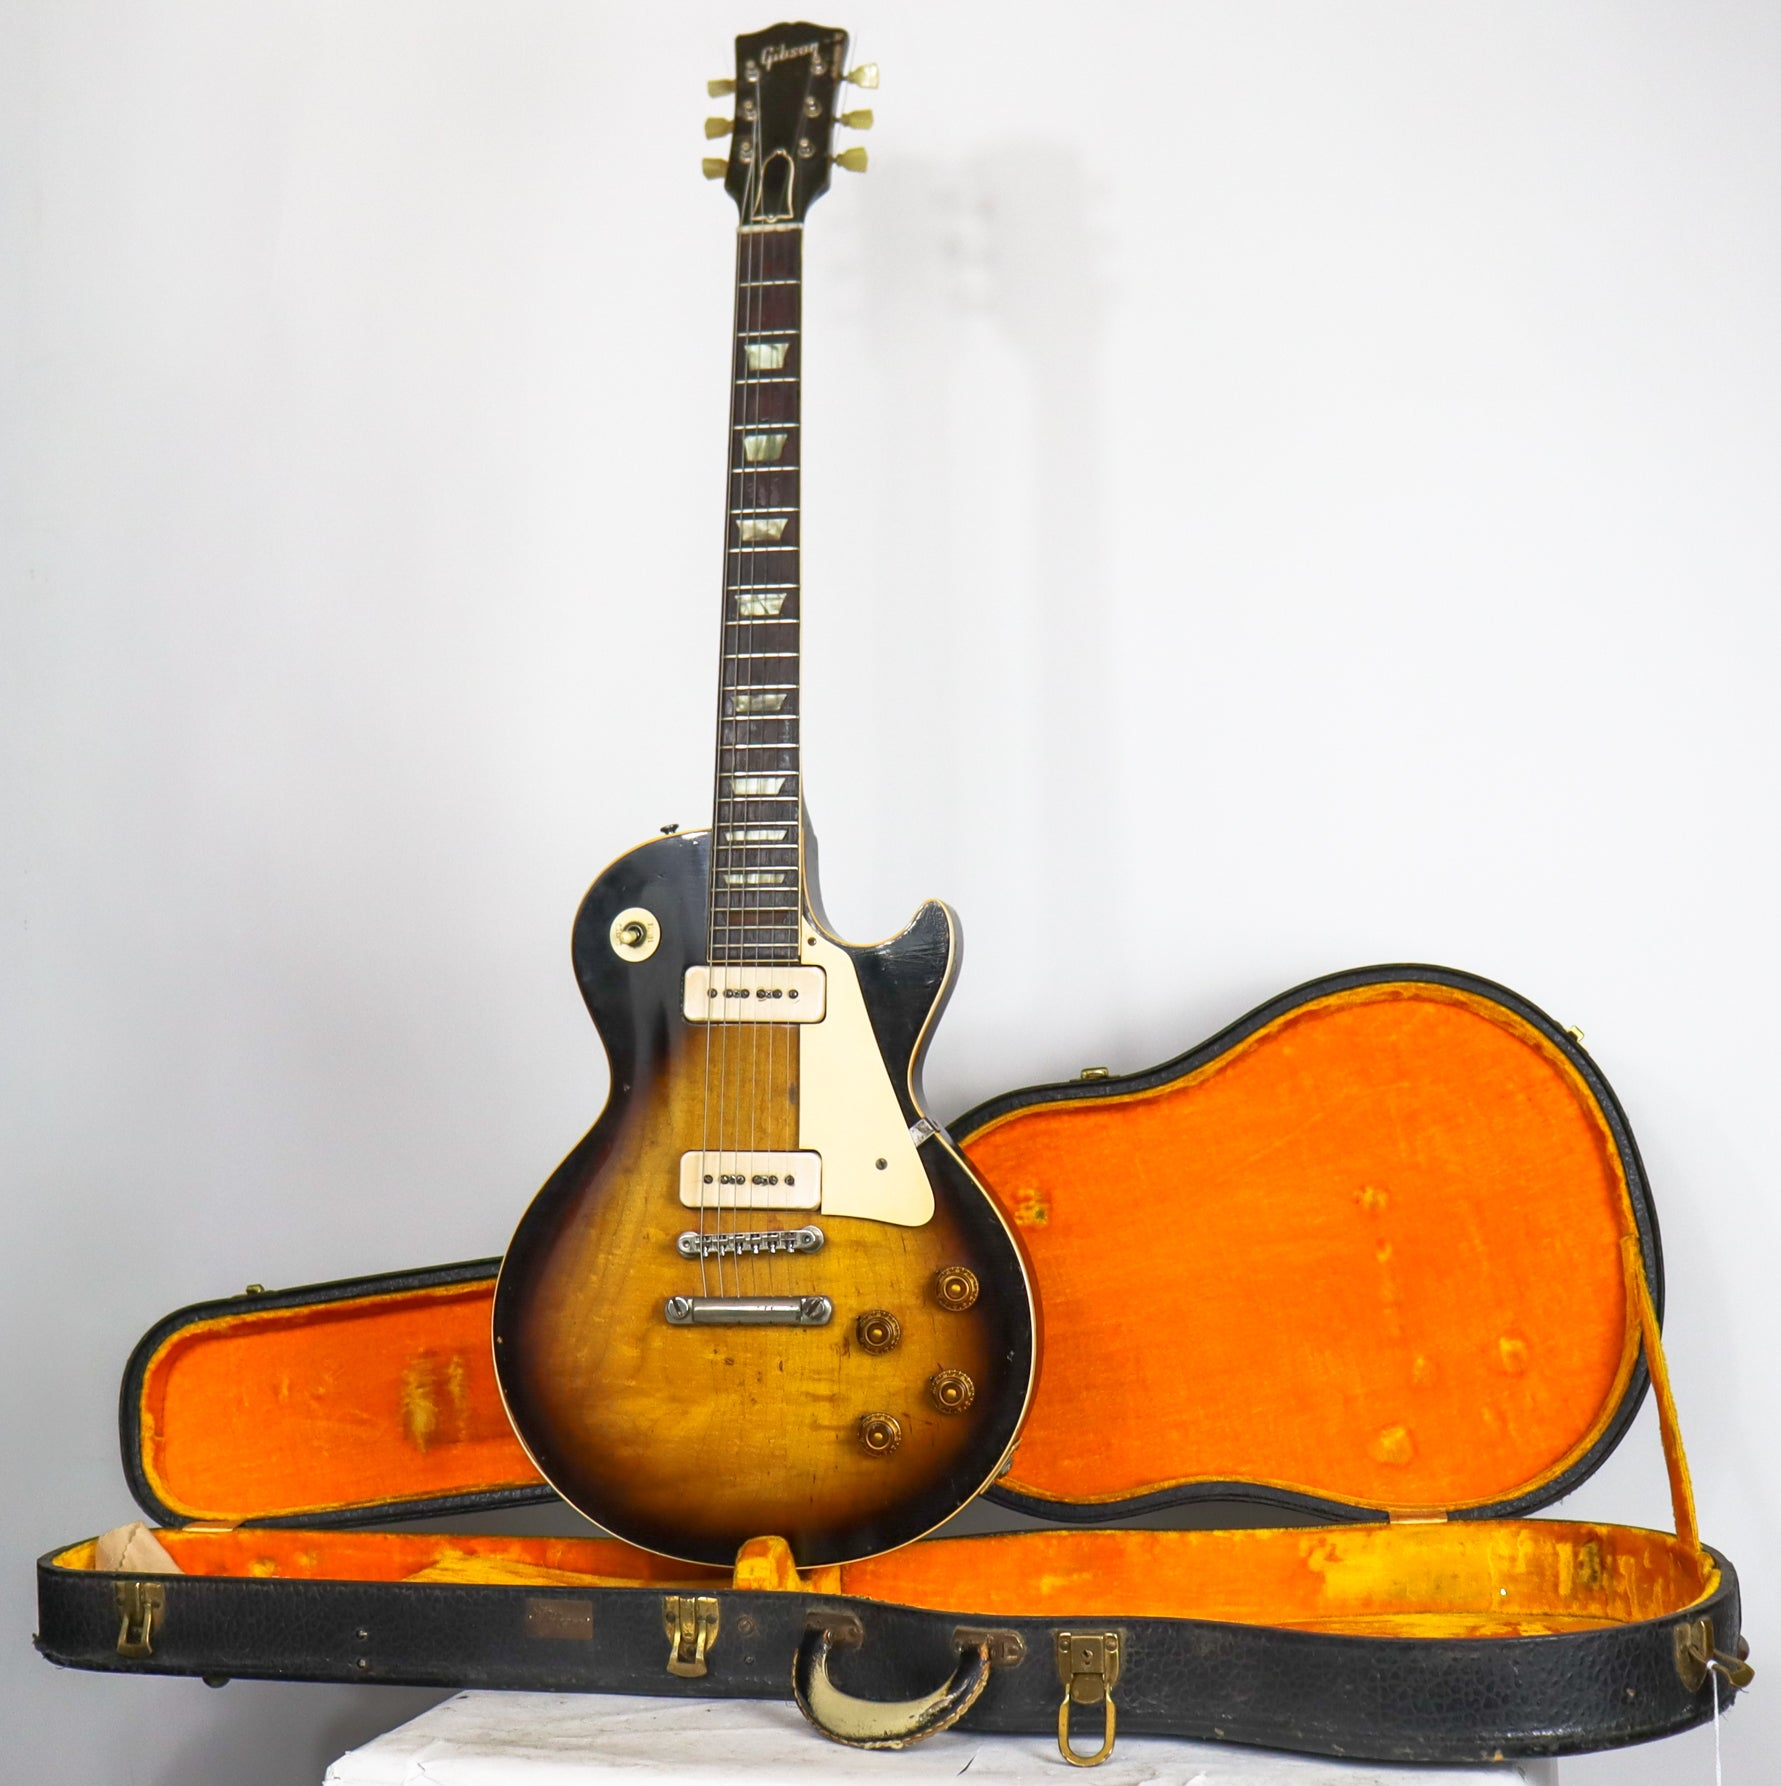 Gibson 1956 Les Paul Sunburst (The First Ever Sunburst Les Paul)